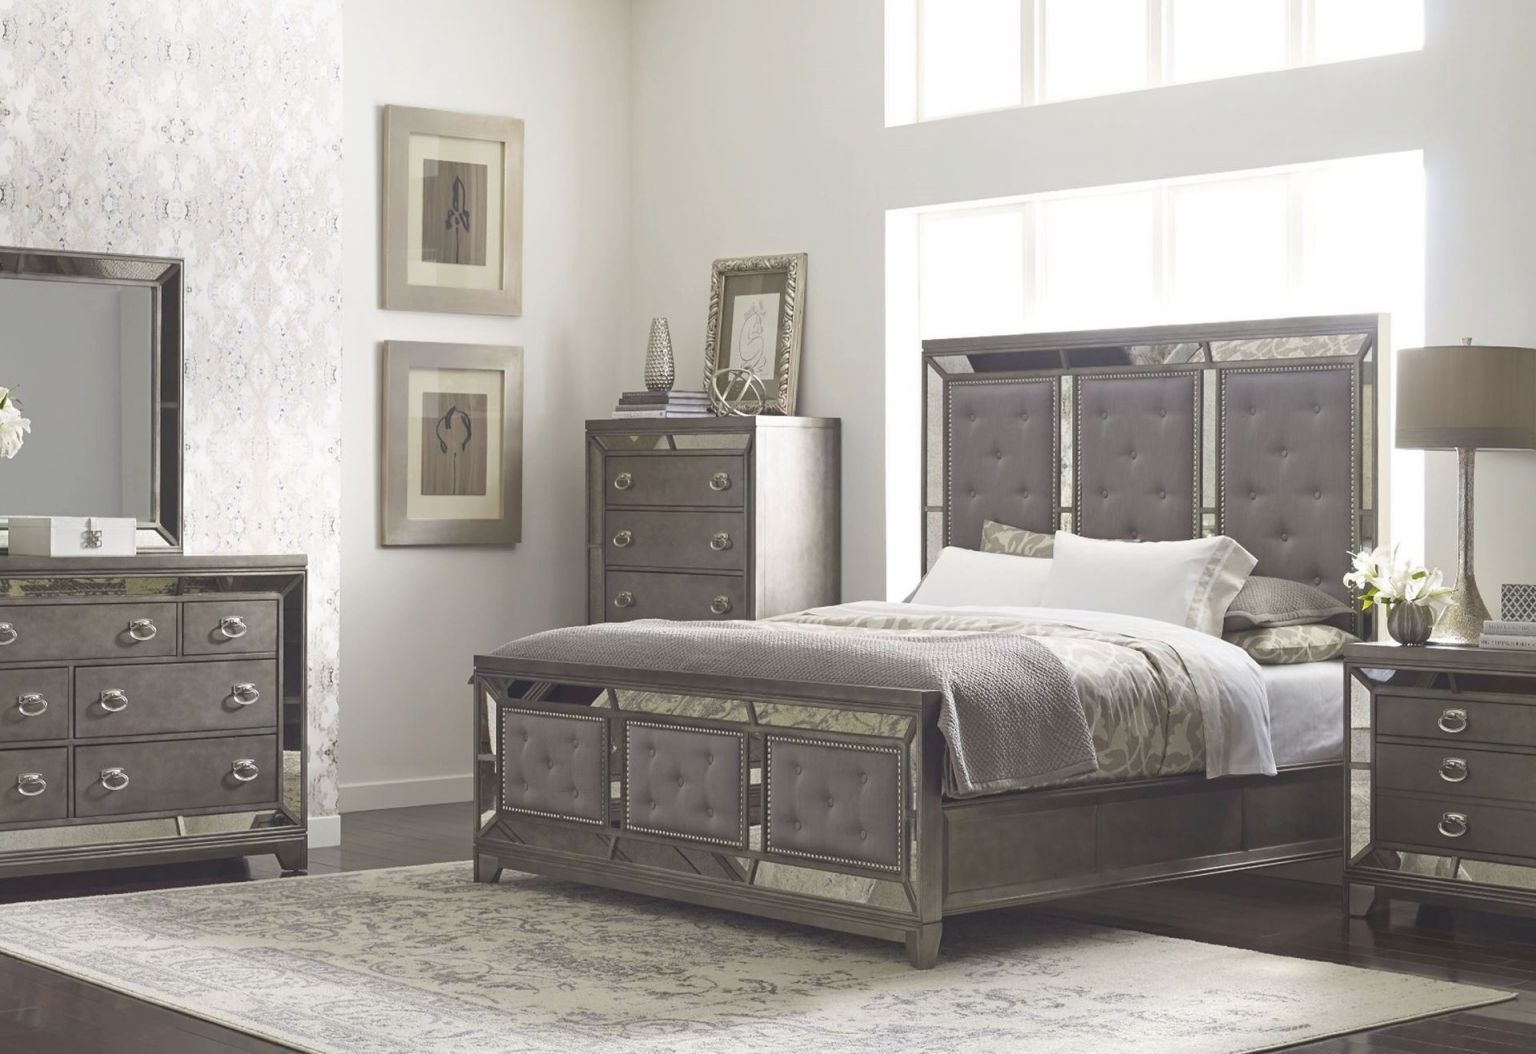 Winston Queen Bedroom Set with regard to Queen Size Bedroom Furniture Sets